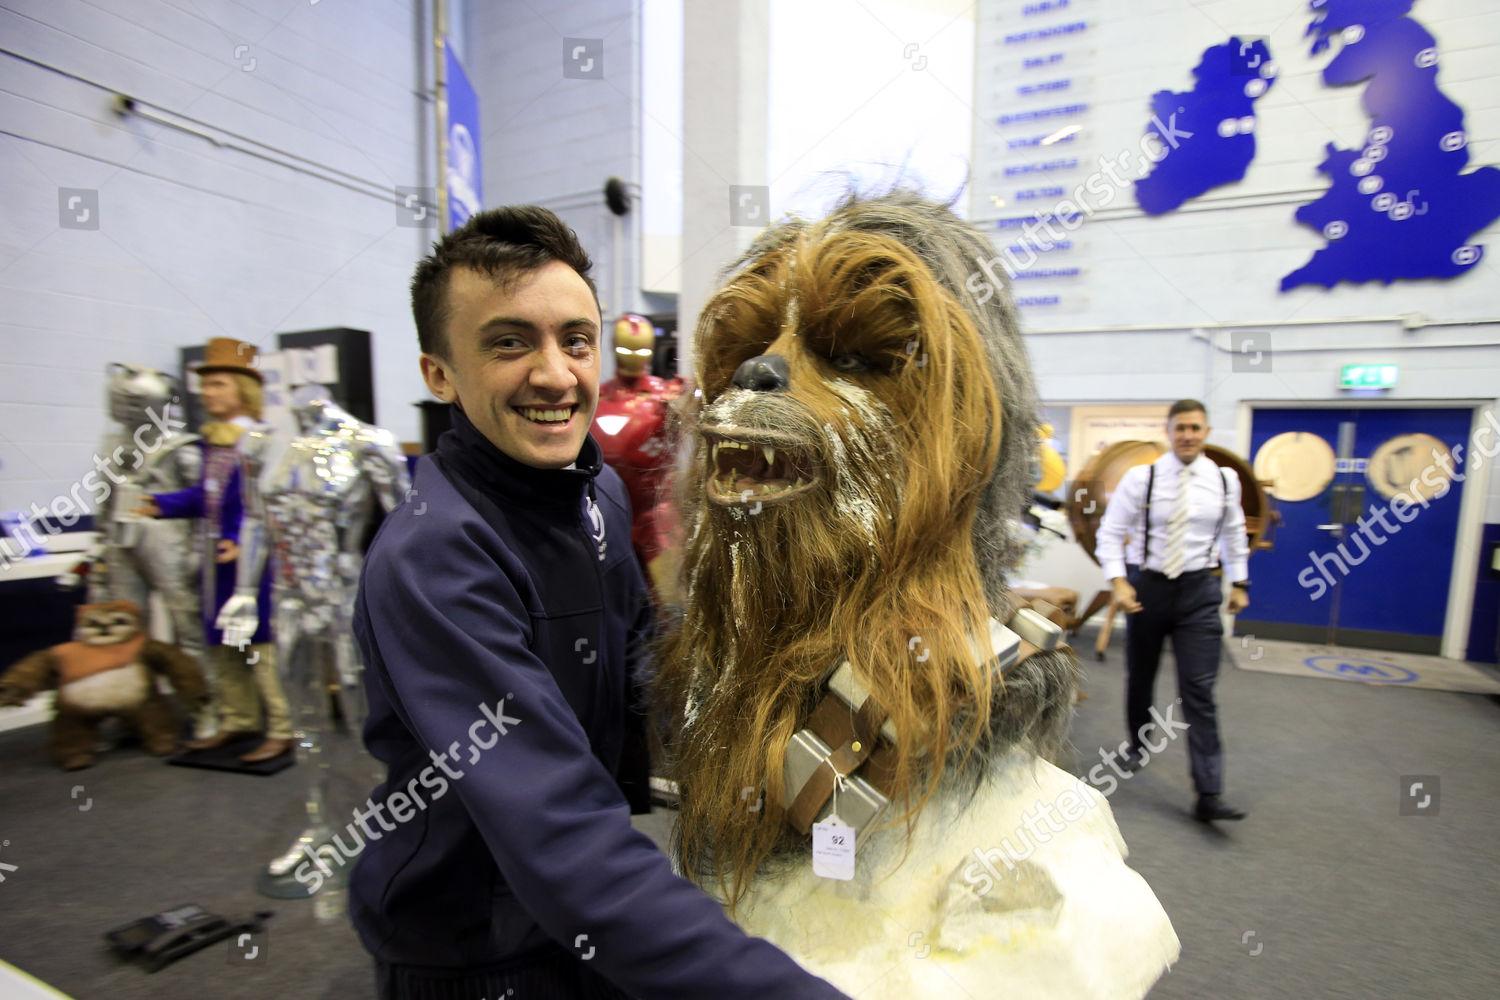 Gareth Kerr adds Chewbacca some other science Editorial Stock Photo